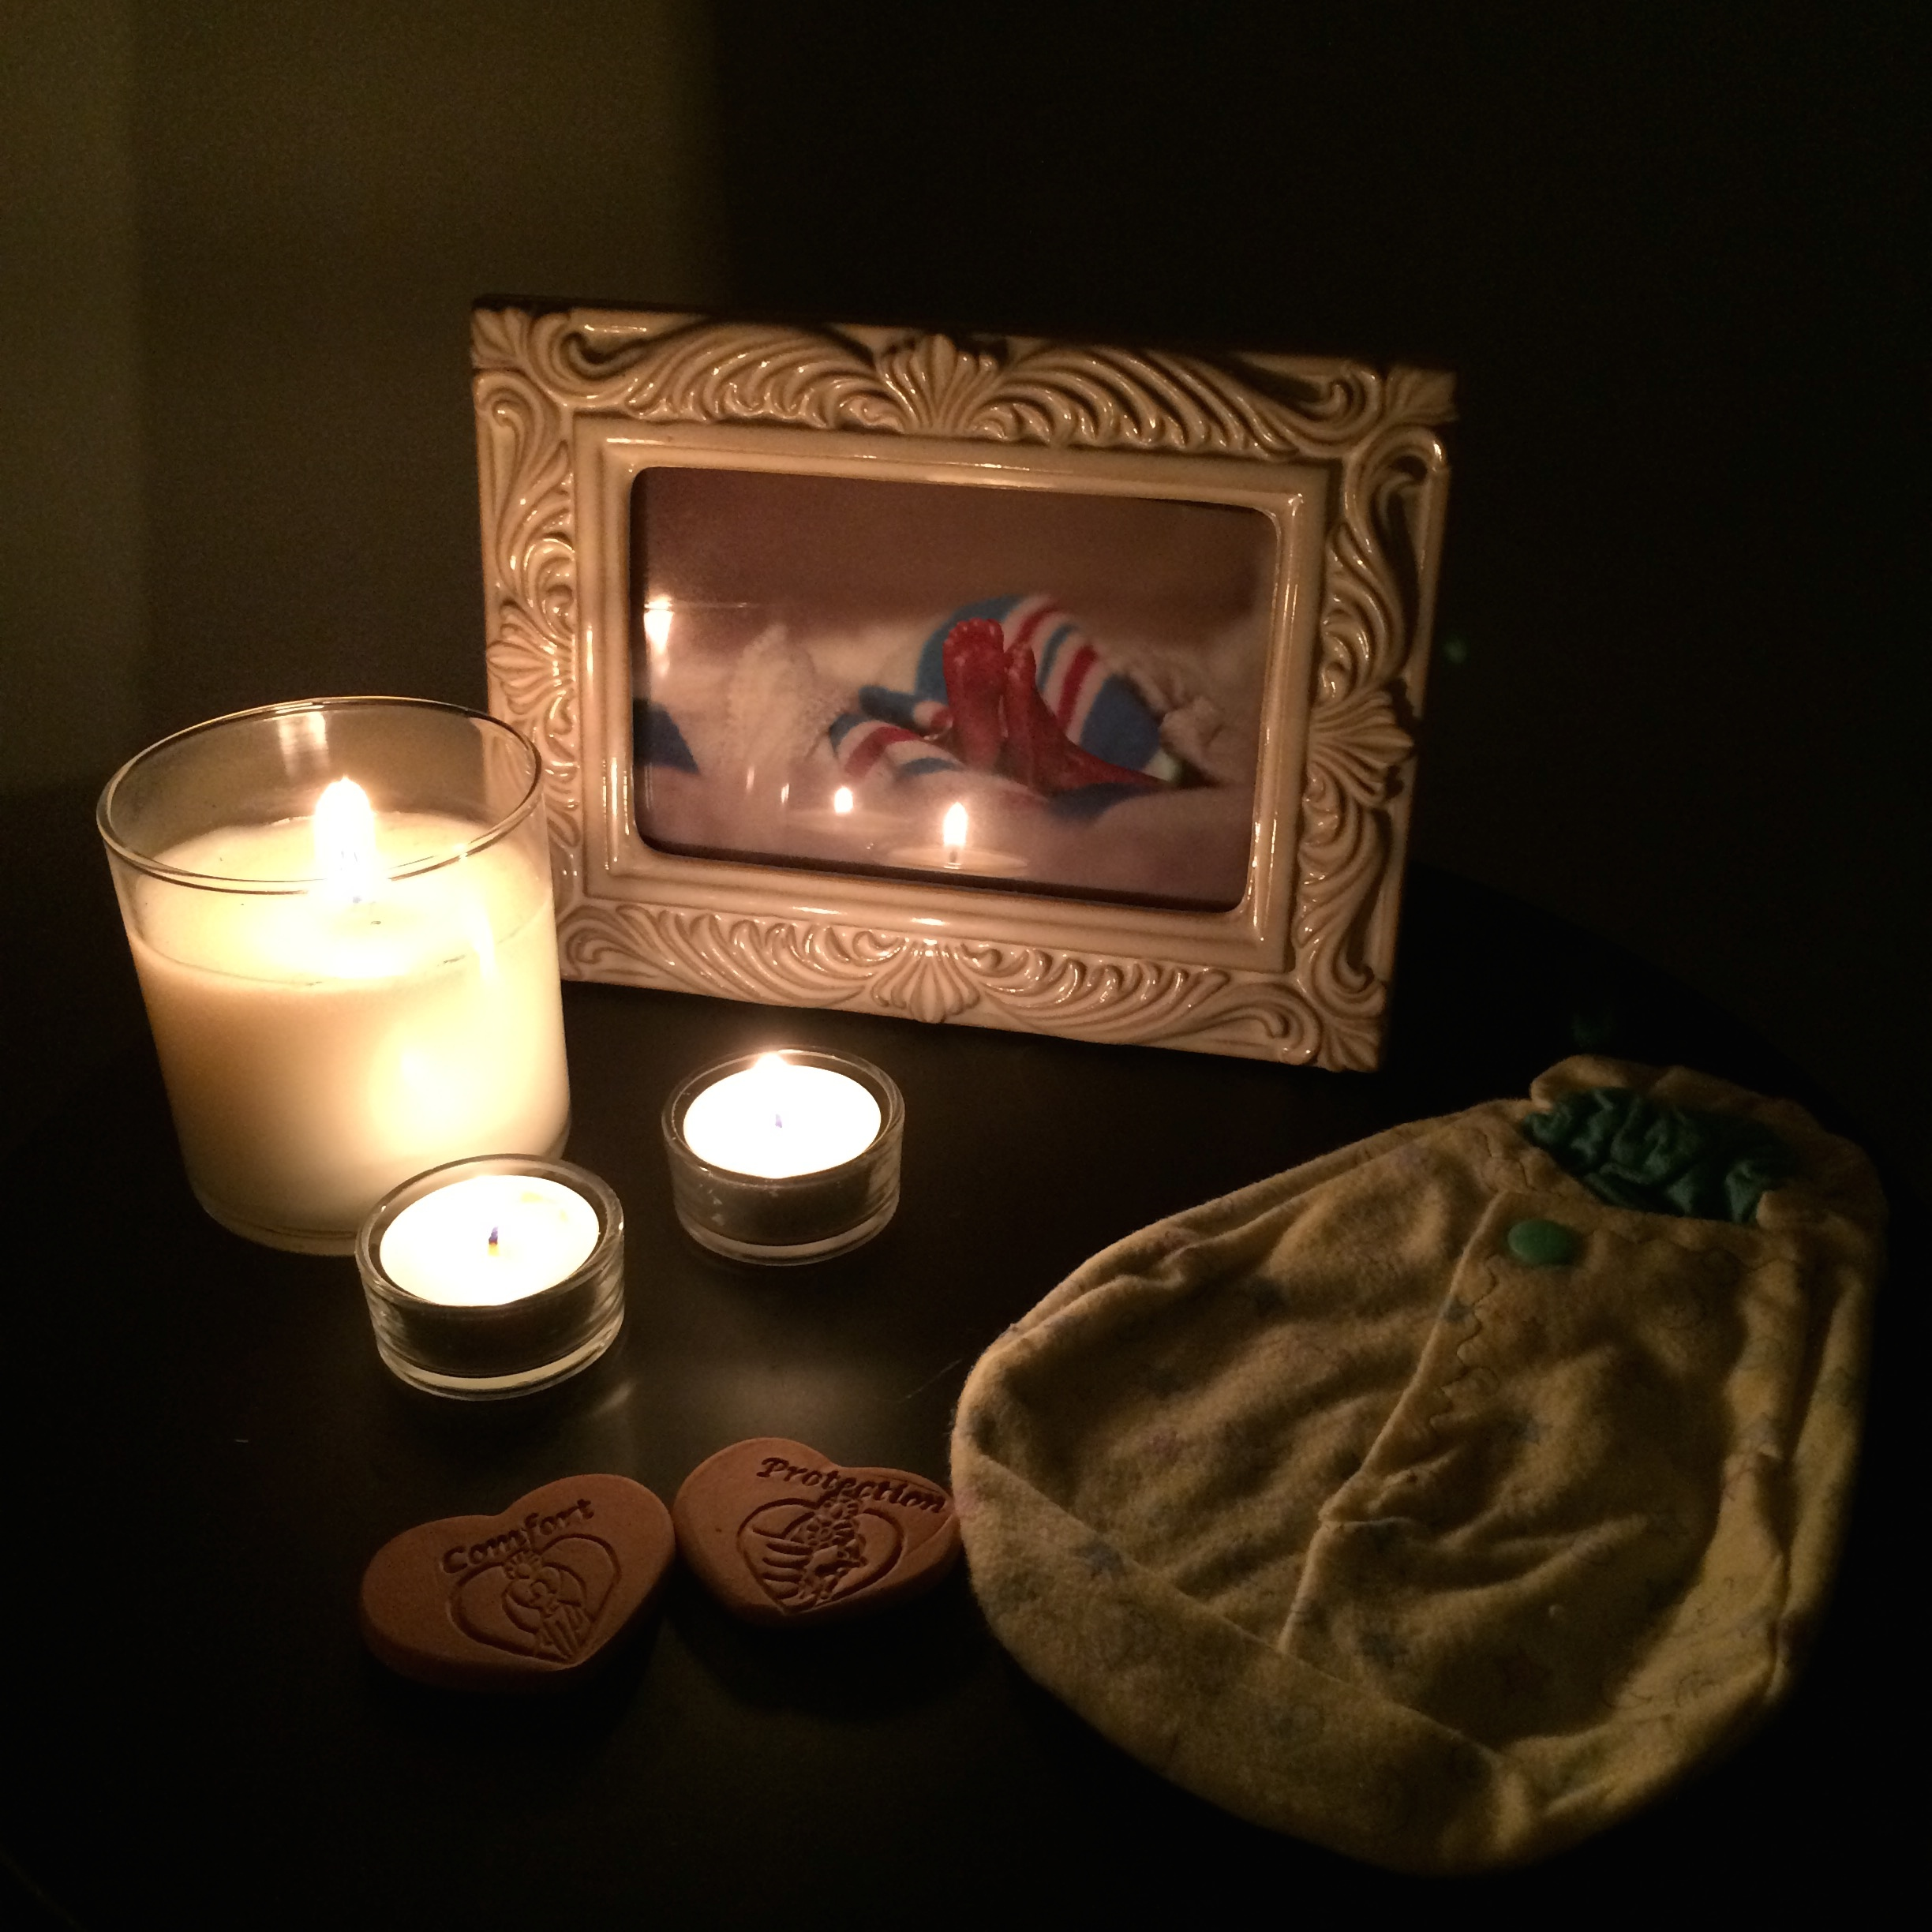 Wave of Light October 2014--during Pregnancy and Infant Loss Awareness Month